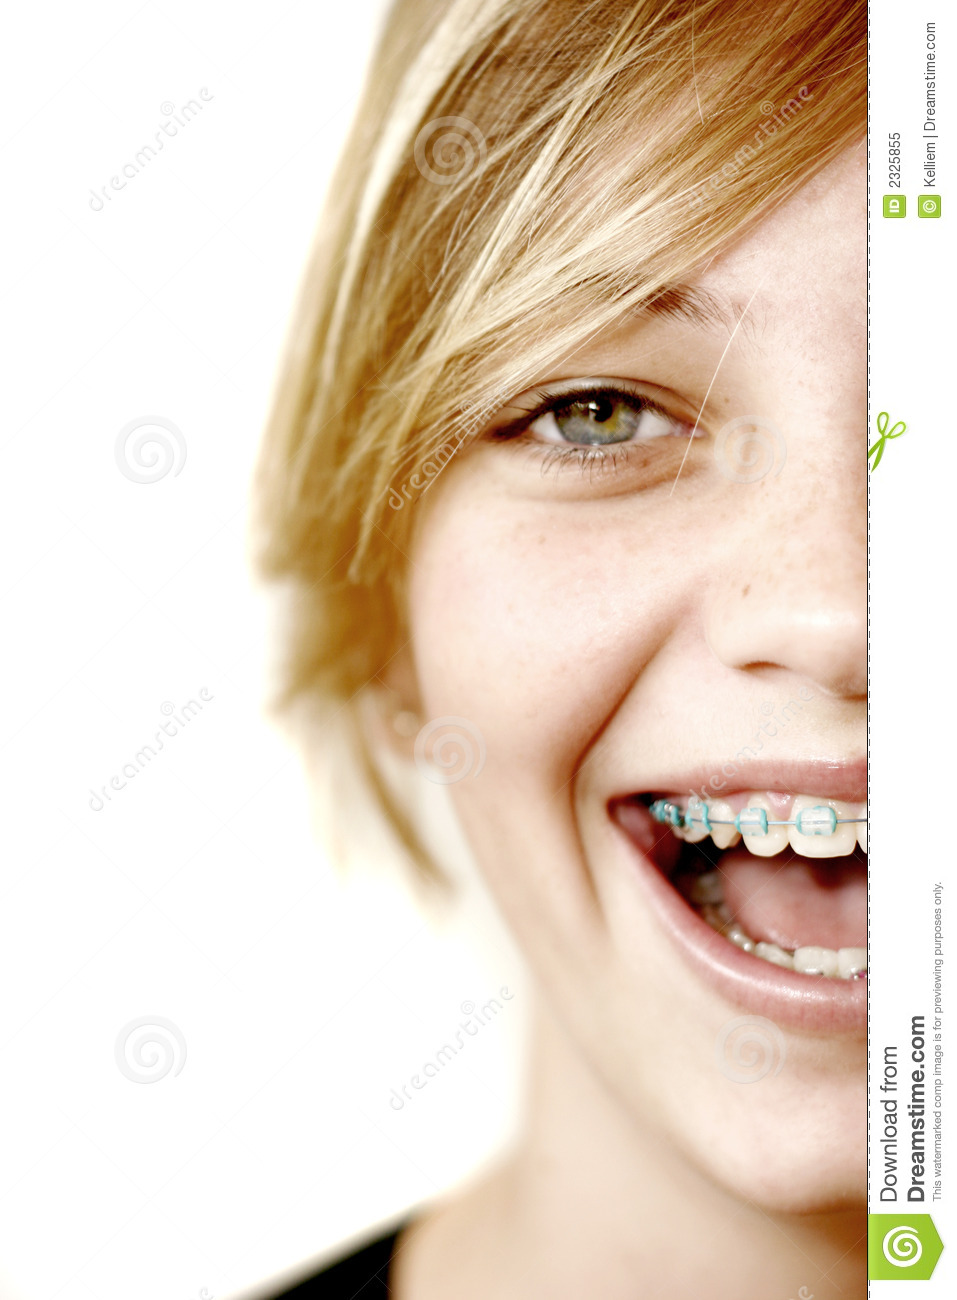 teen with braces free